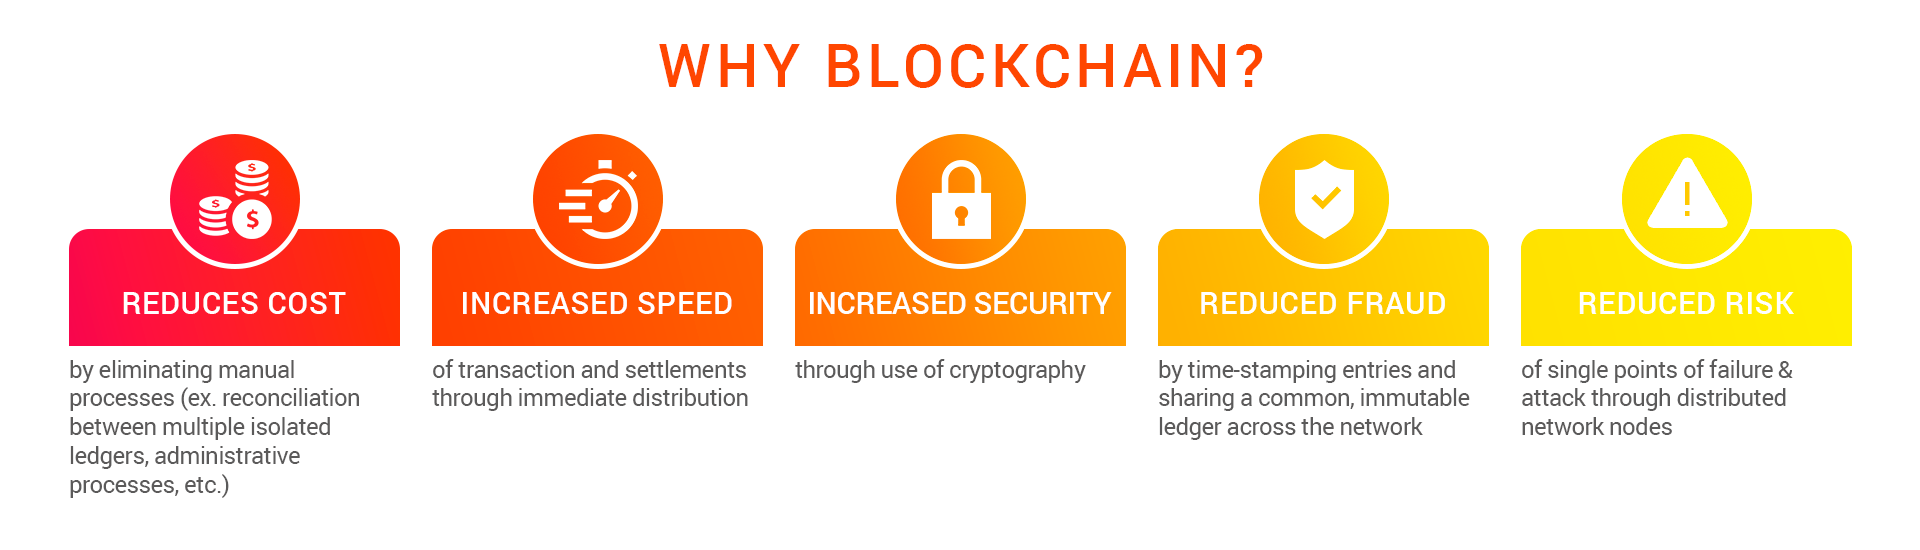 An infographic depicting the advantages of blockchain for building marketplaces